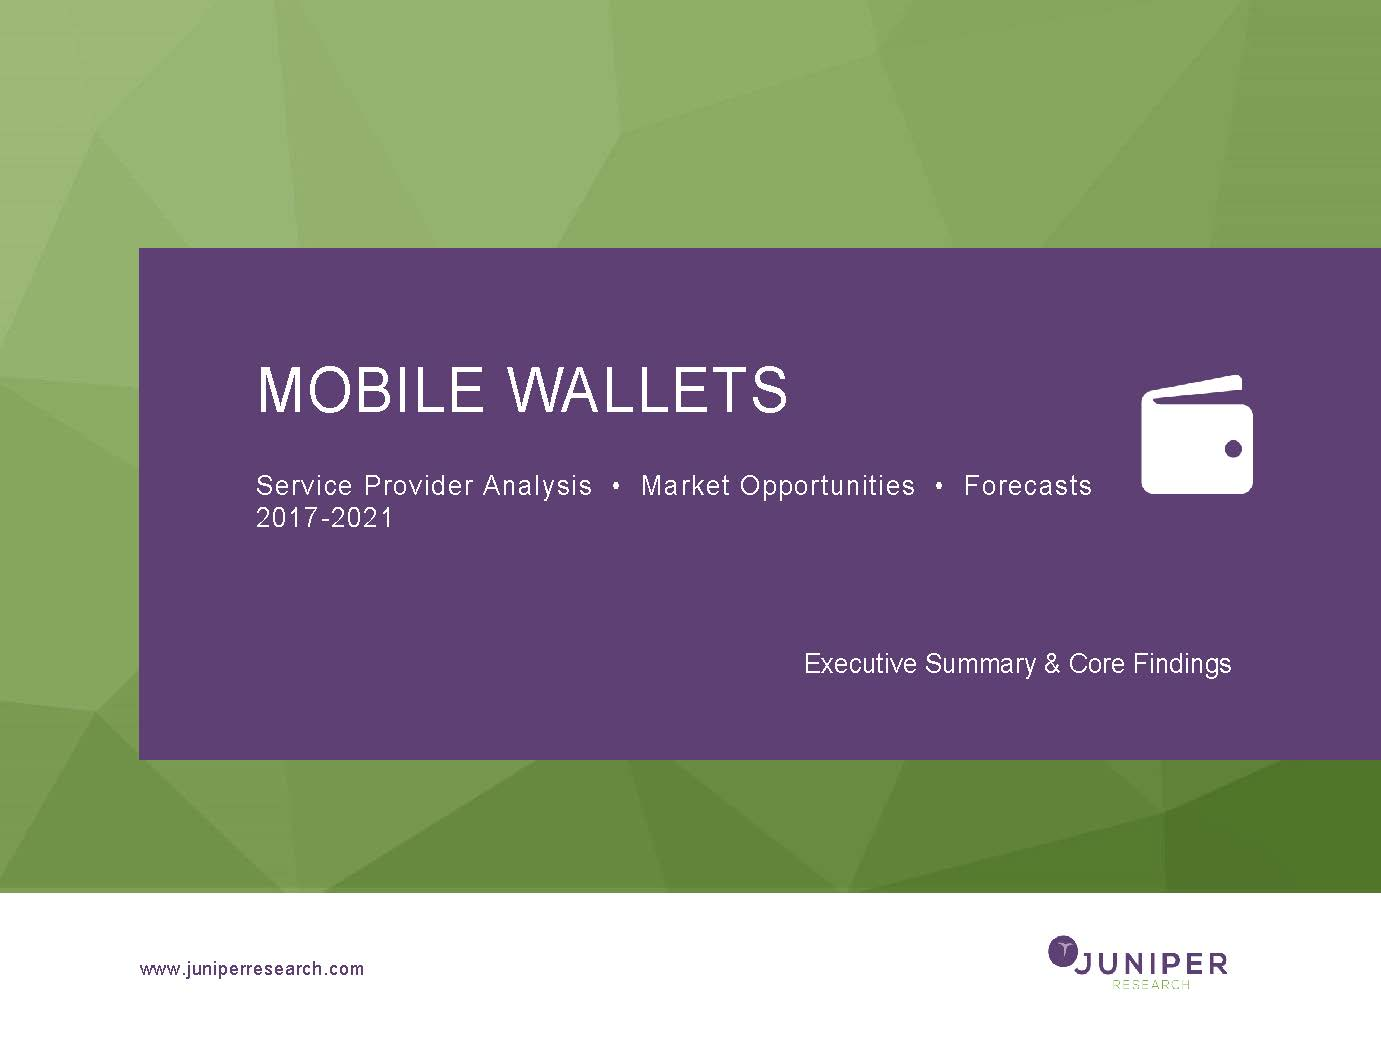 Mobile Wallets: Service Provider Analysis, Market Opportunities & Forecasts 2017-2021